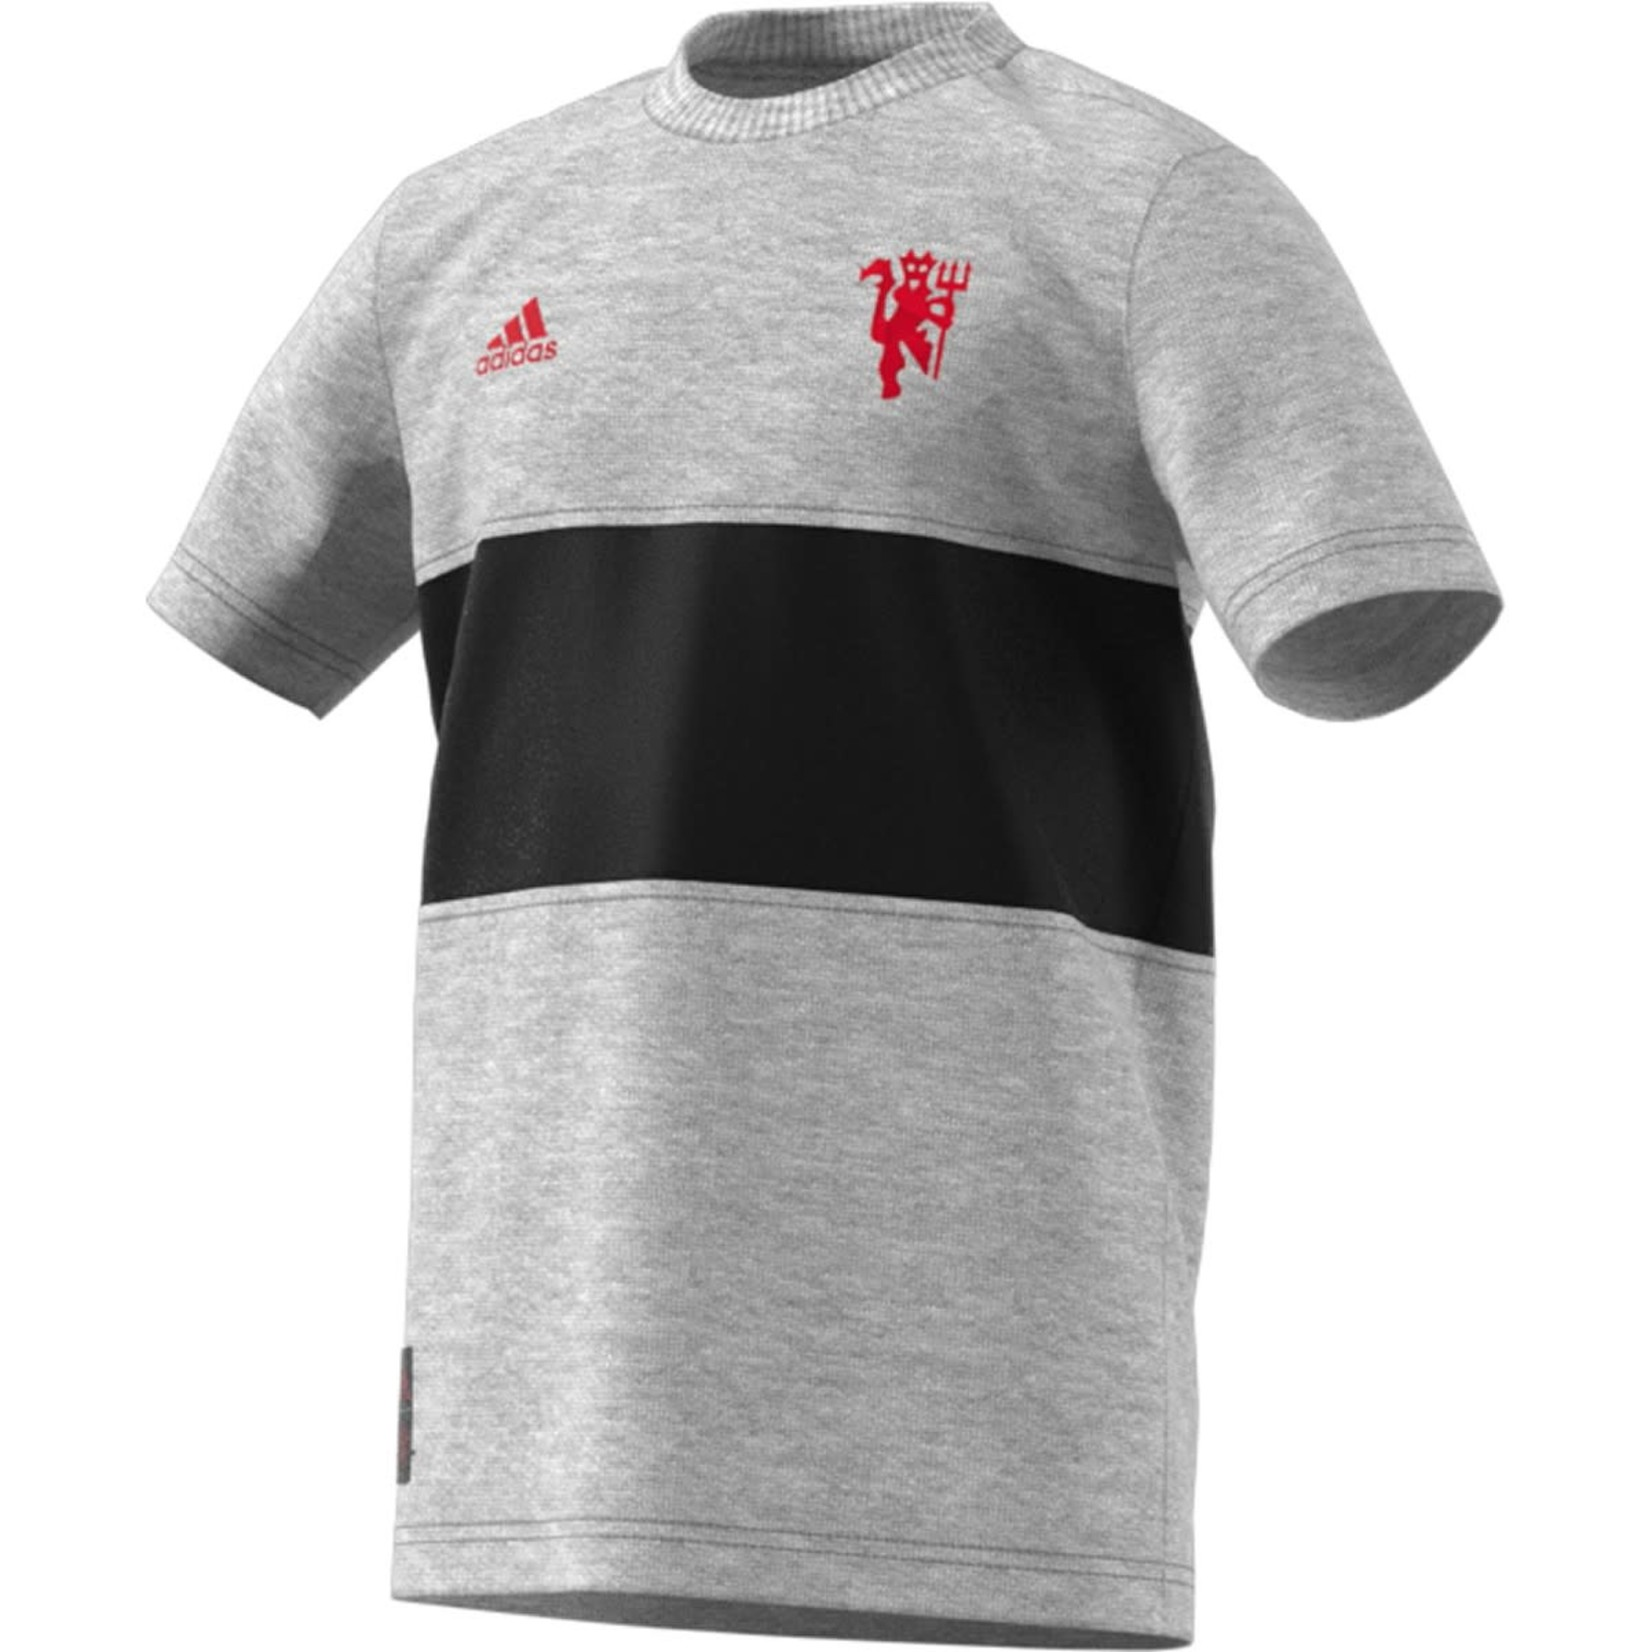 ADIDAS MANCHESTER UNITED 19/20 GRAPHIC TEE YOUTH